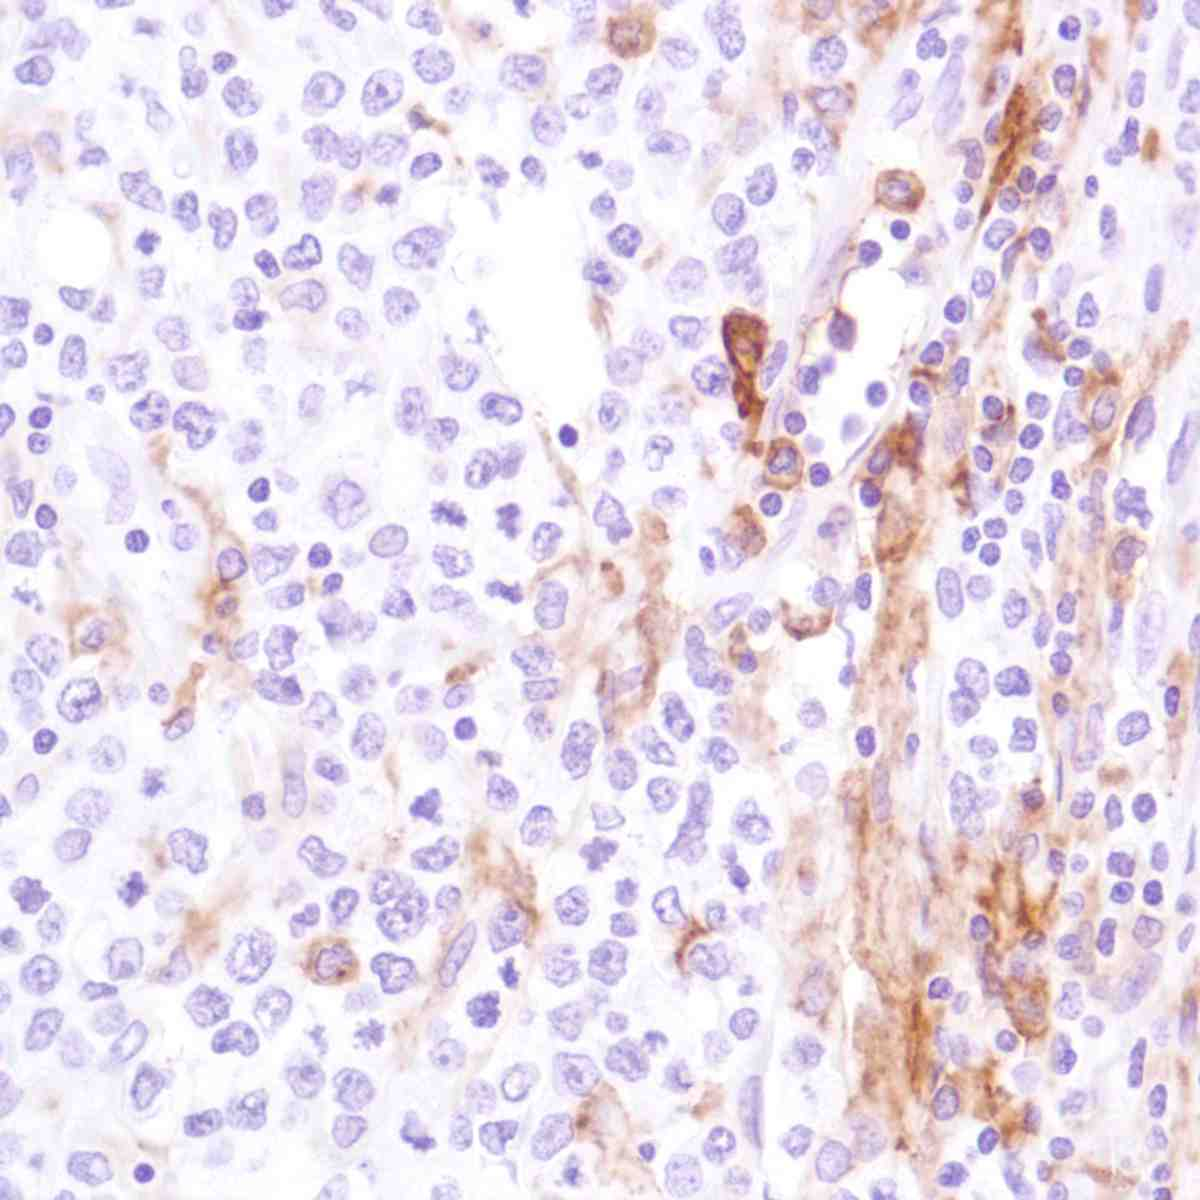 Human B-Cell Lymphoma stained with anti-CD16a antibody